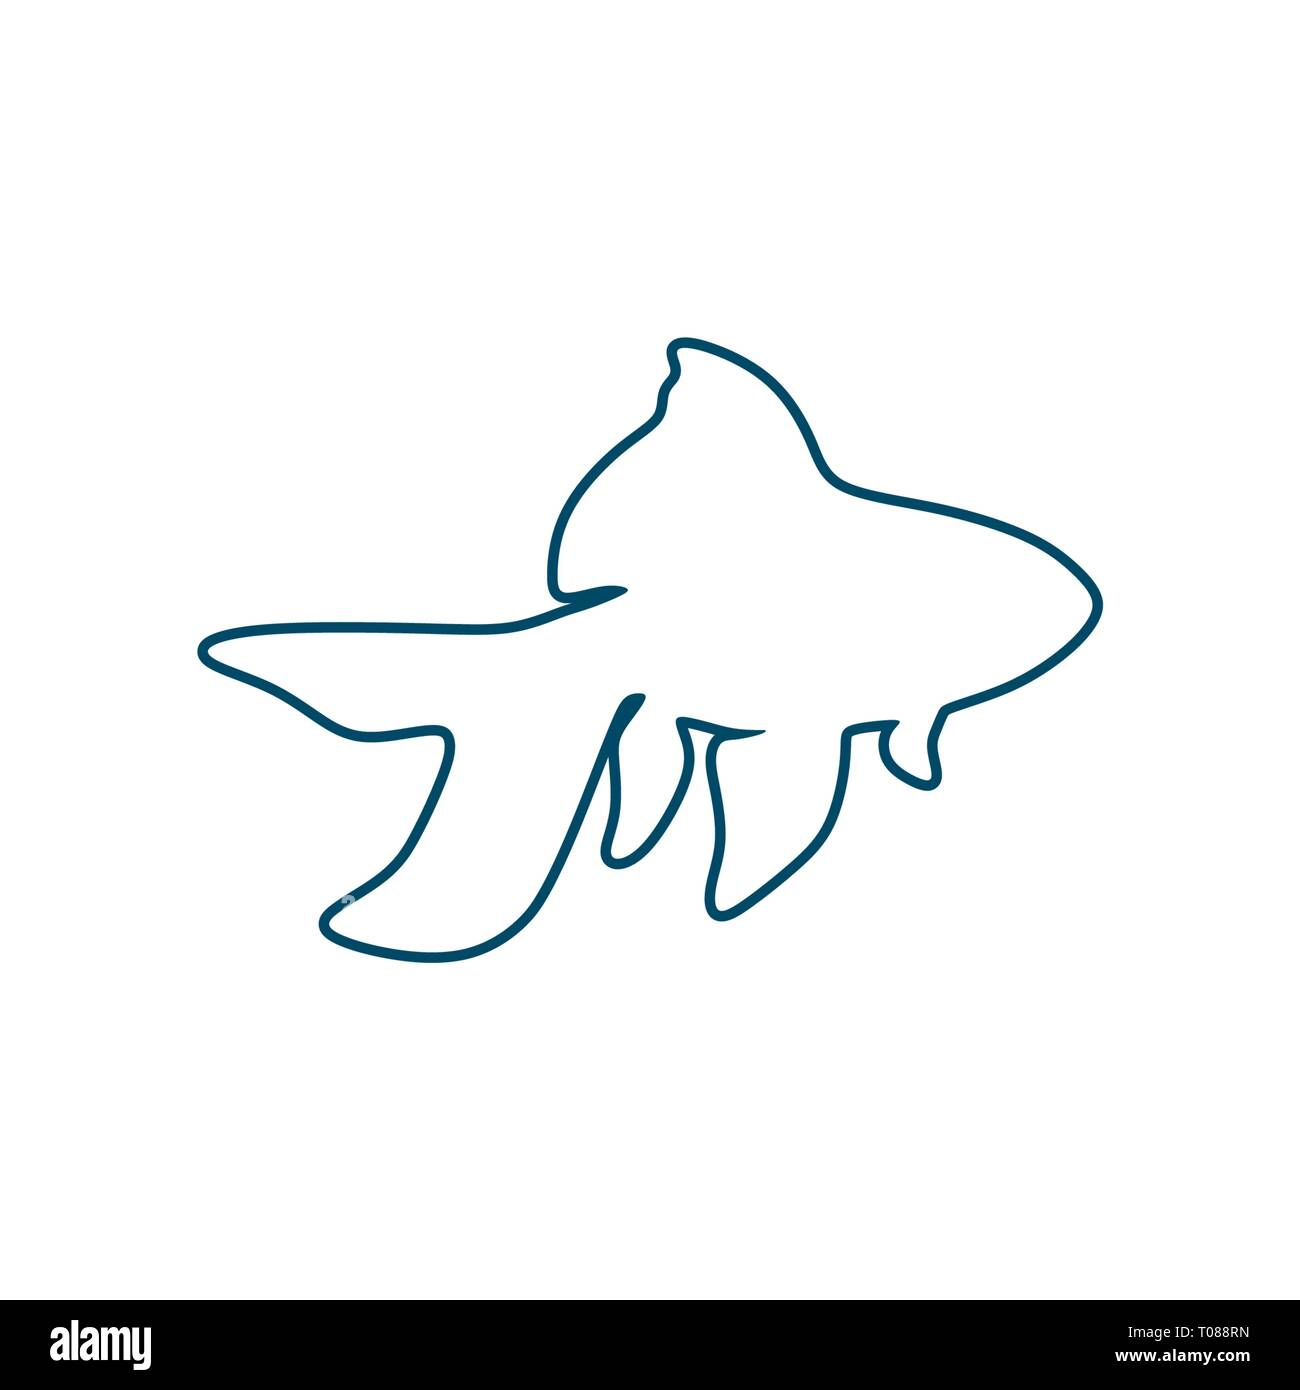 Sea life line icon - Stock Image